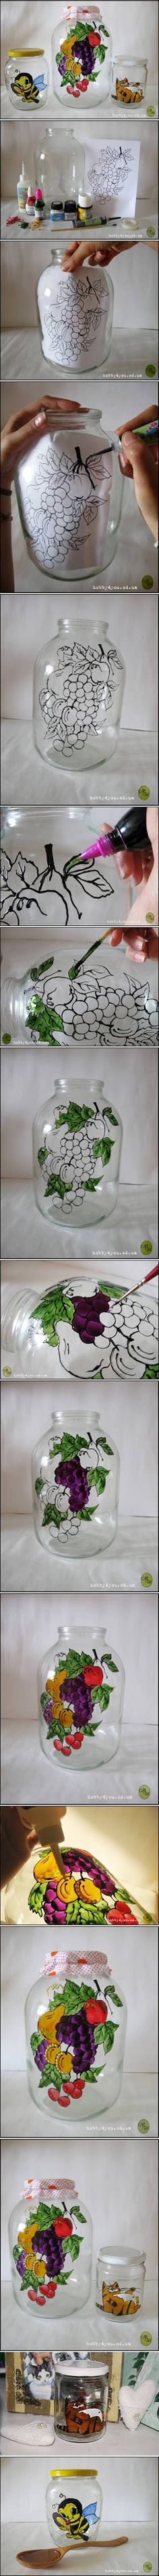 DIY Jar Painting: